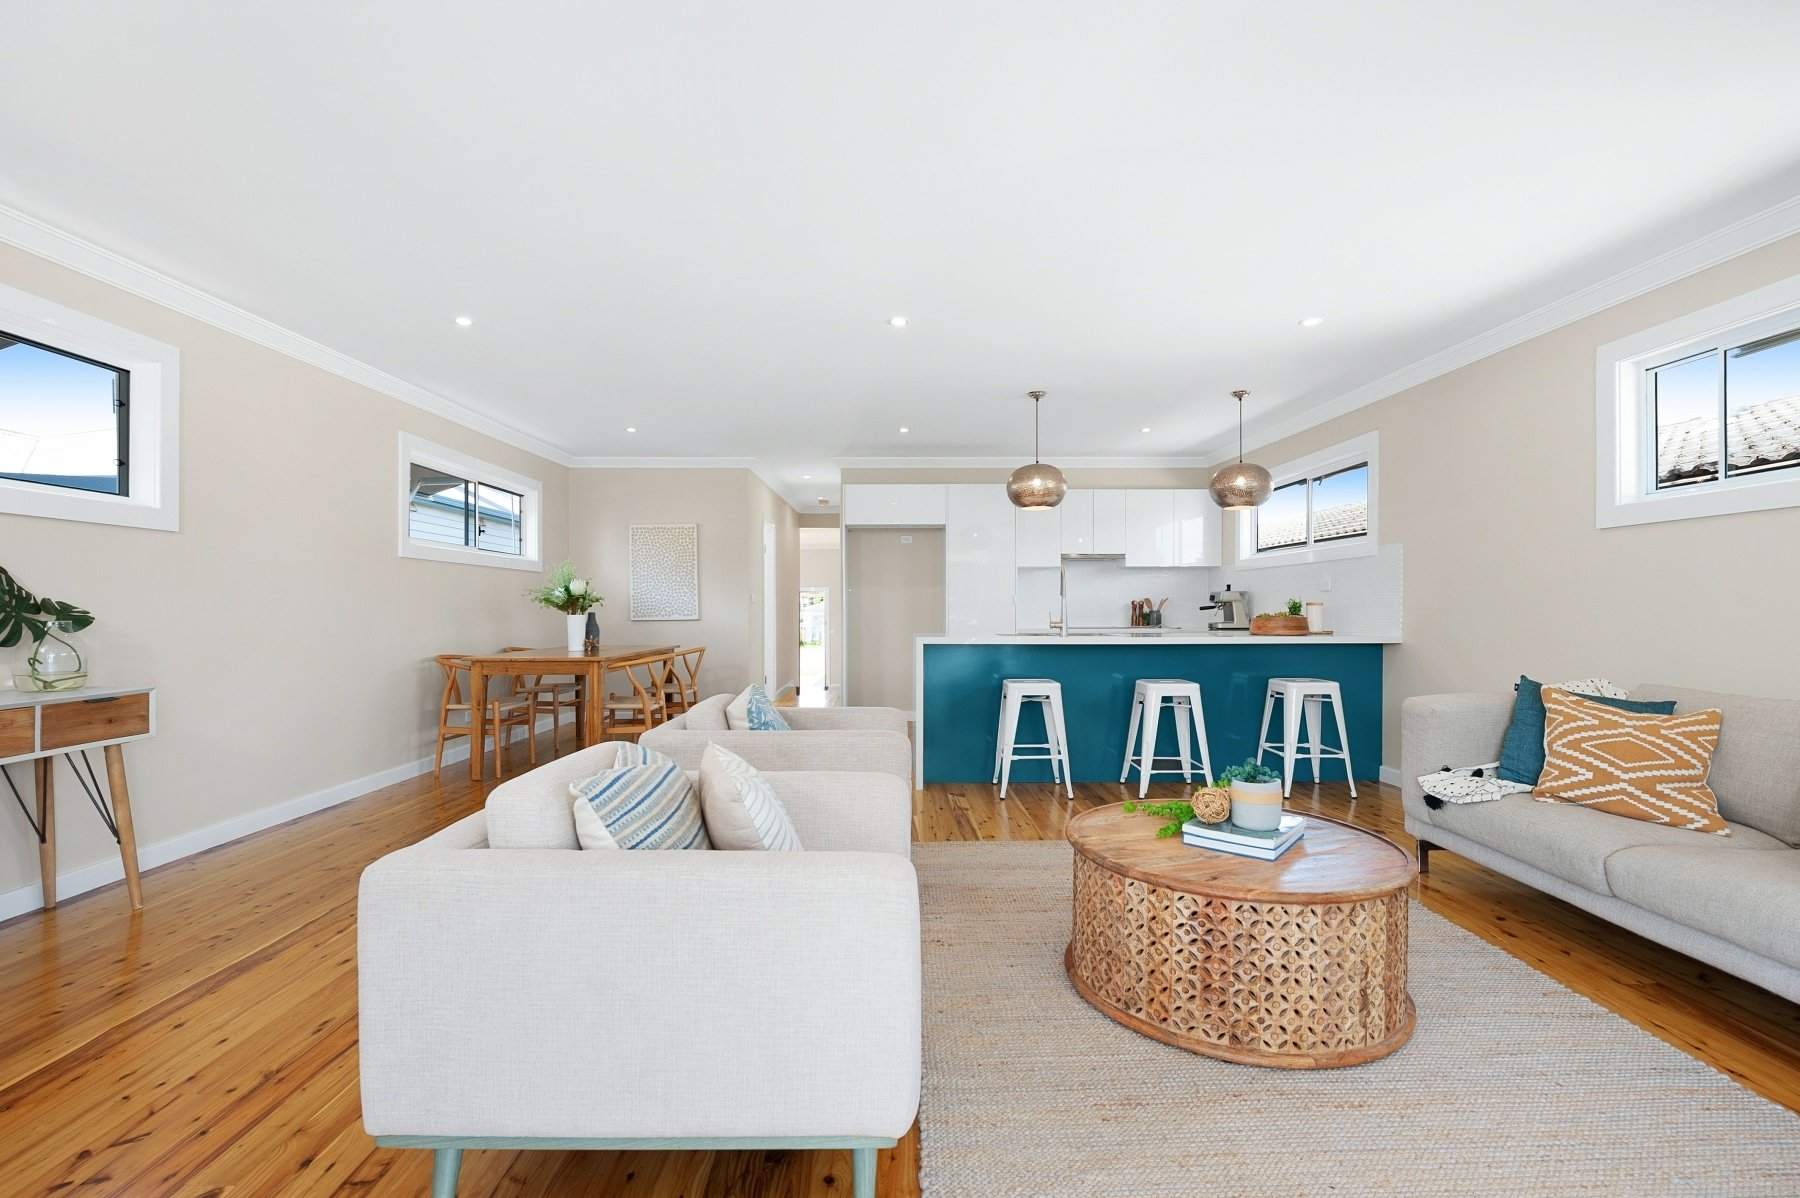 William Close | Belmont South - https://www.peonyandsilk.com.au/wp-content/uploads/2019/03/WEB_1_William_006_6-1.jpg